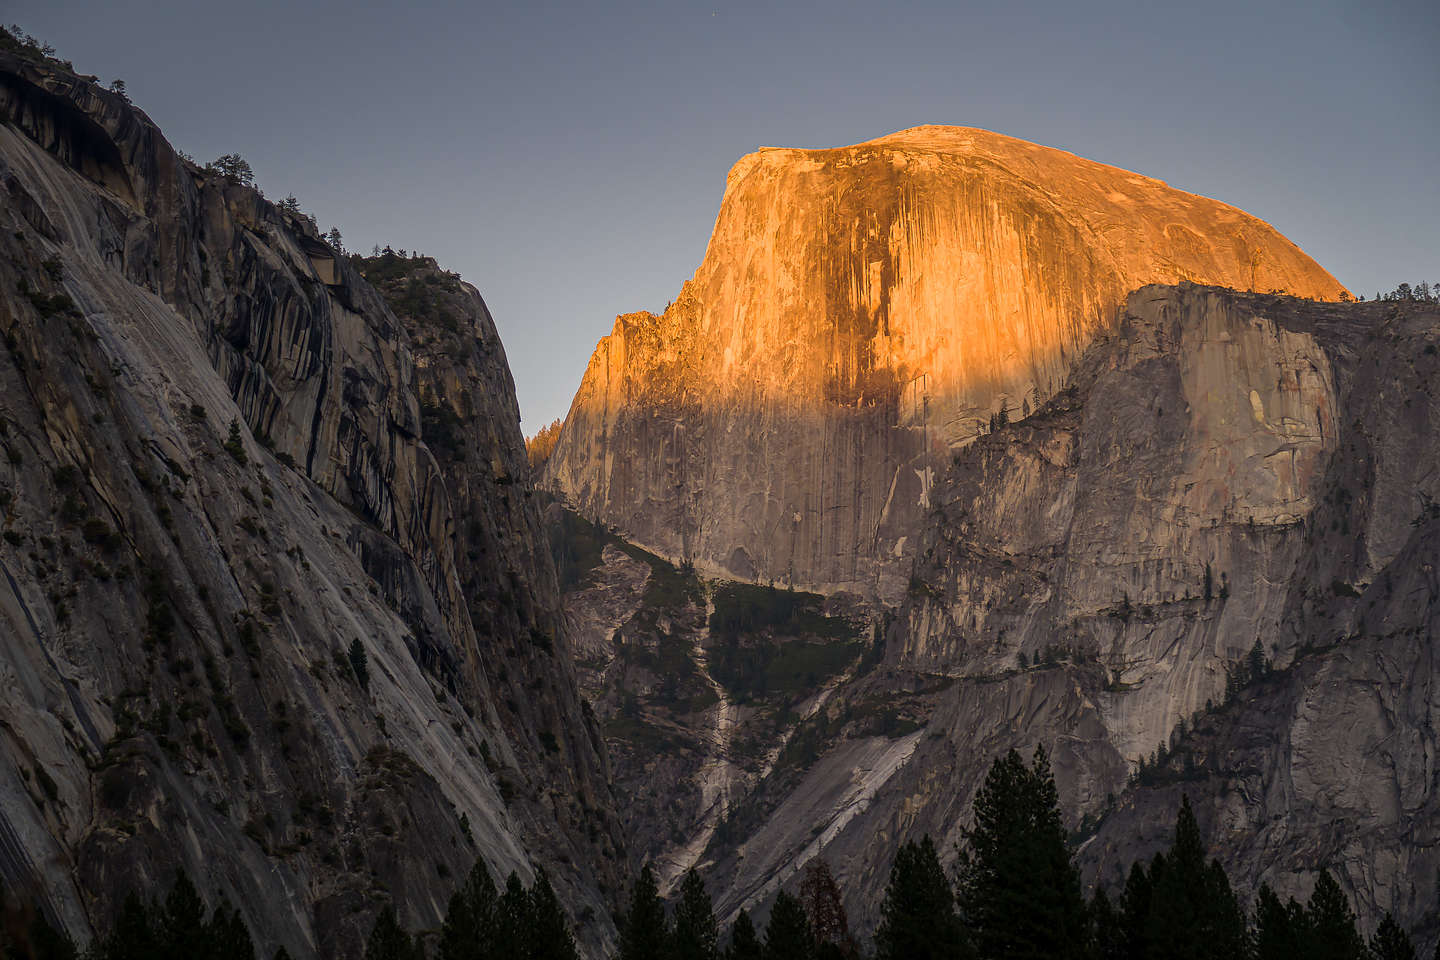 Alpenglow over Half Dome